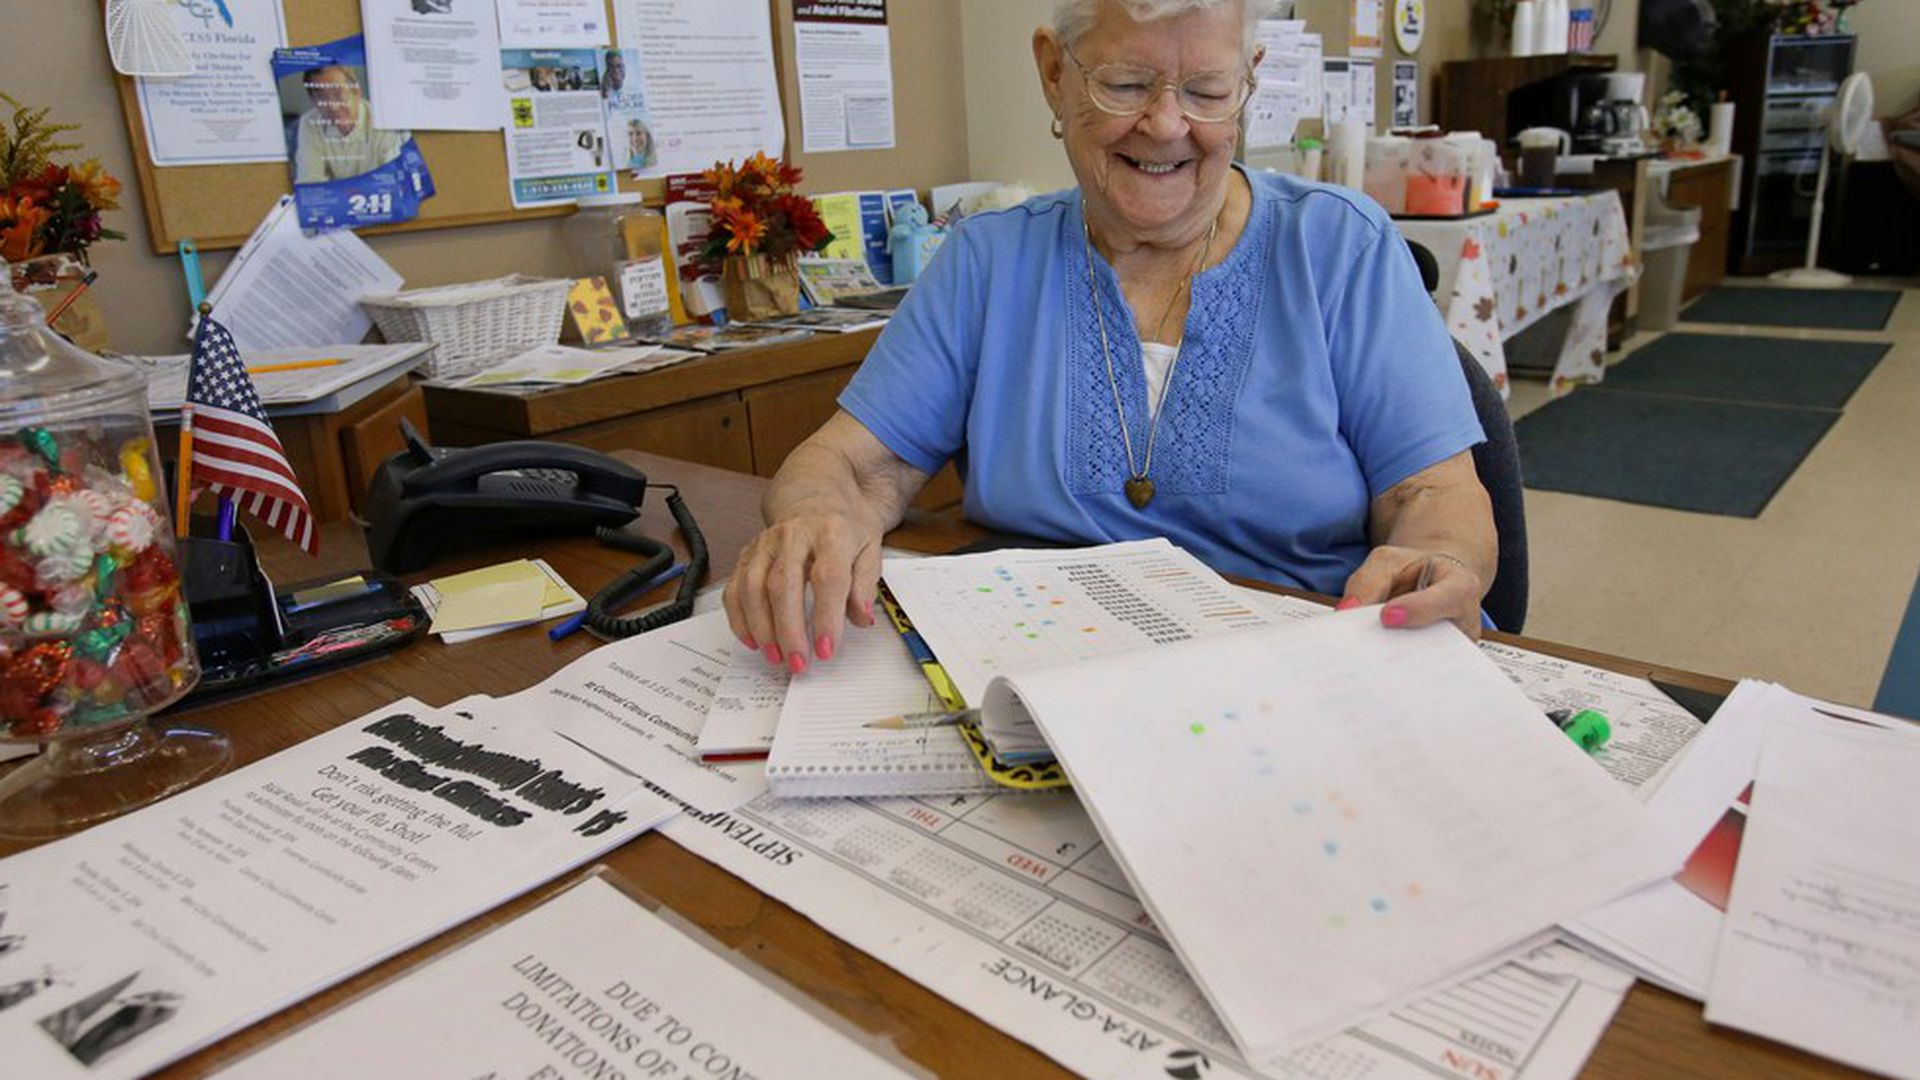 Senior citizens working in record numbers